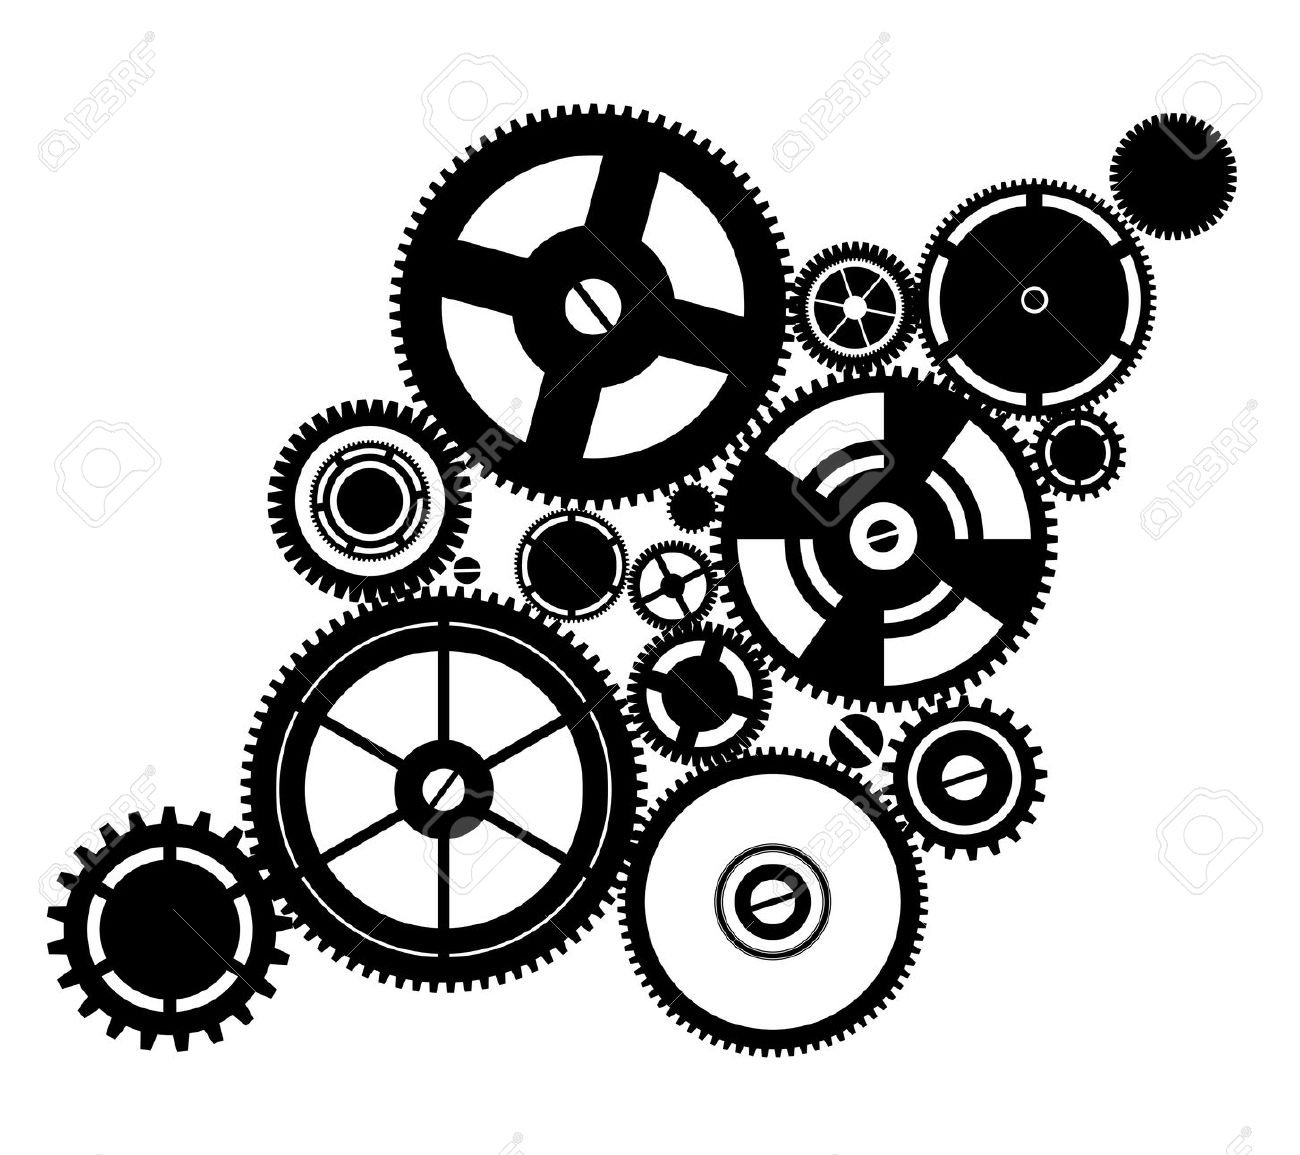 Machine clipart clockwork Vector silhouette 10083505 silhouette 10083505